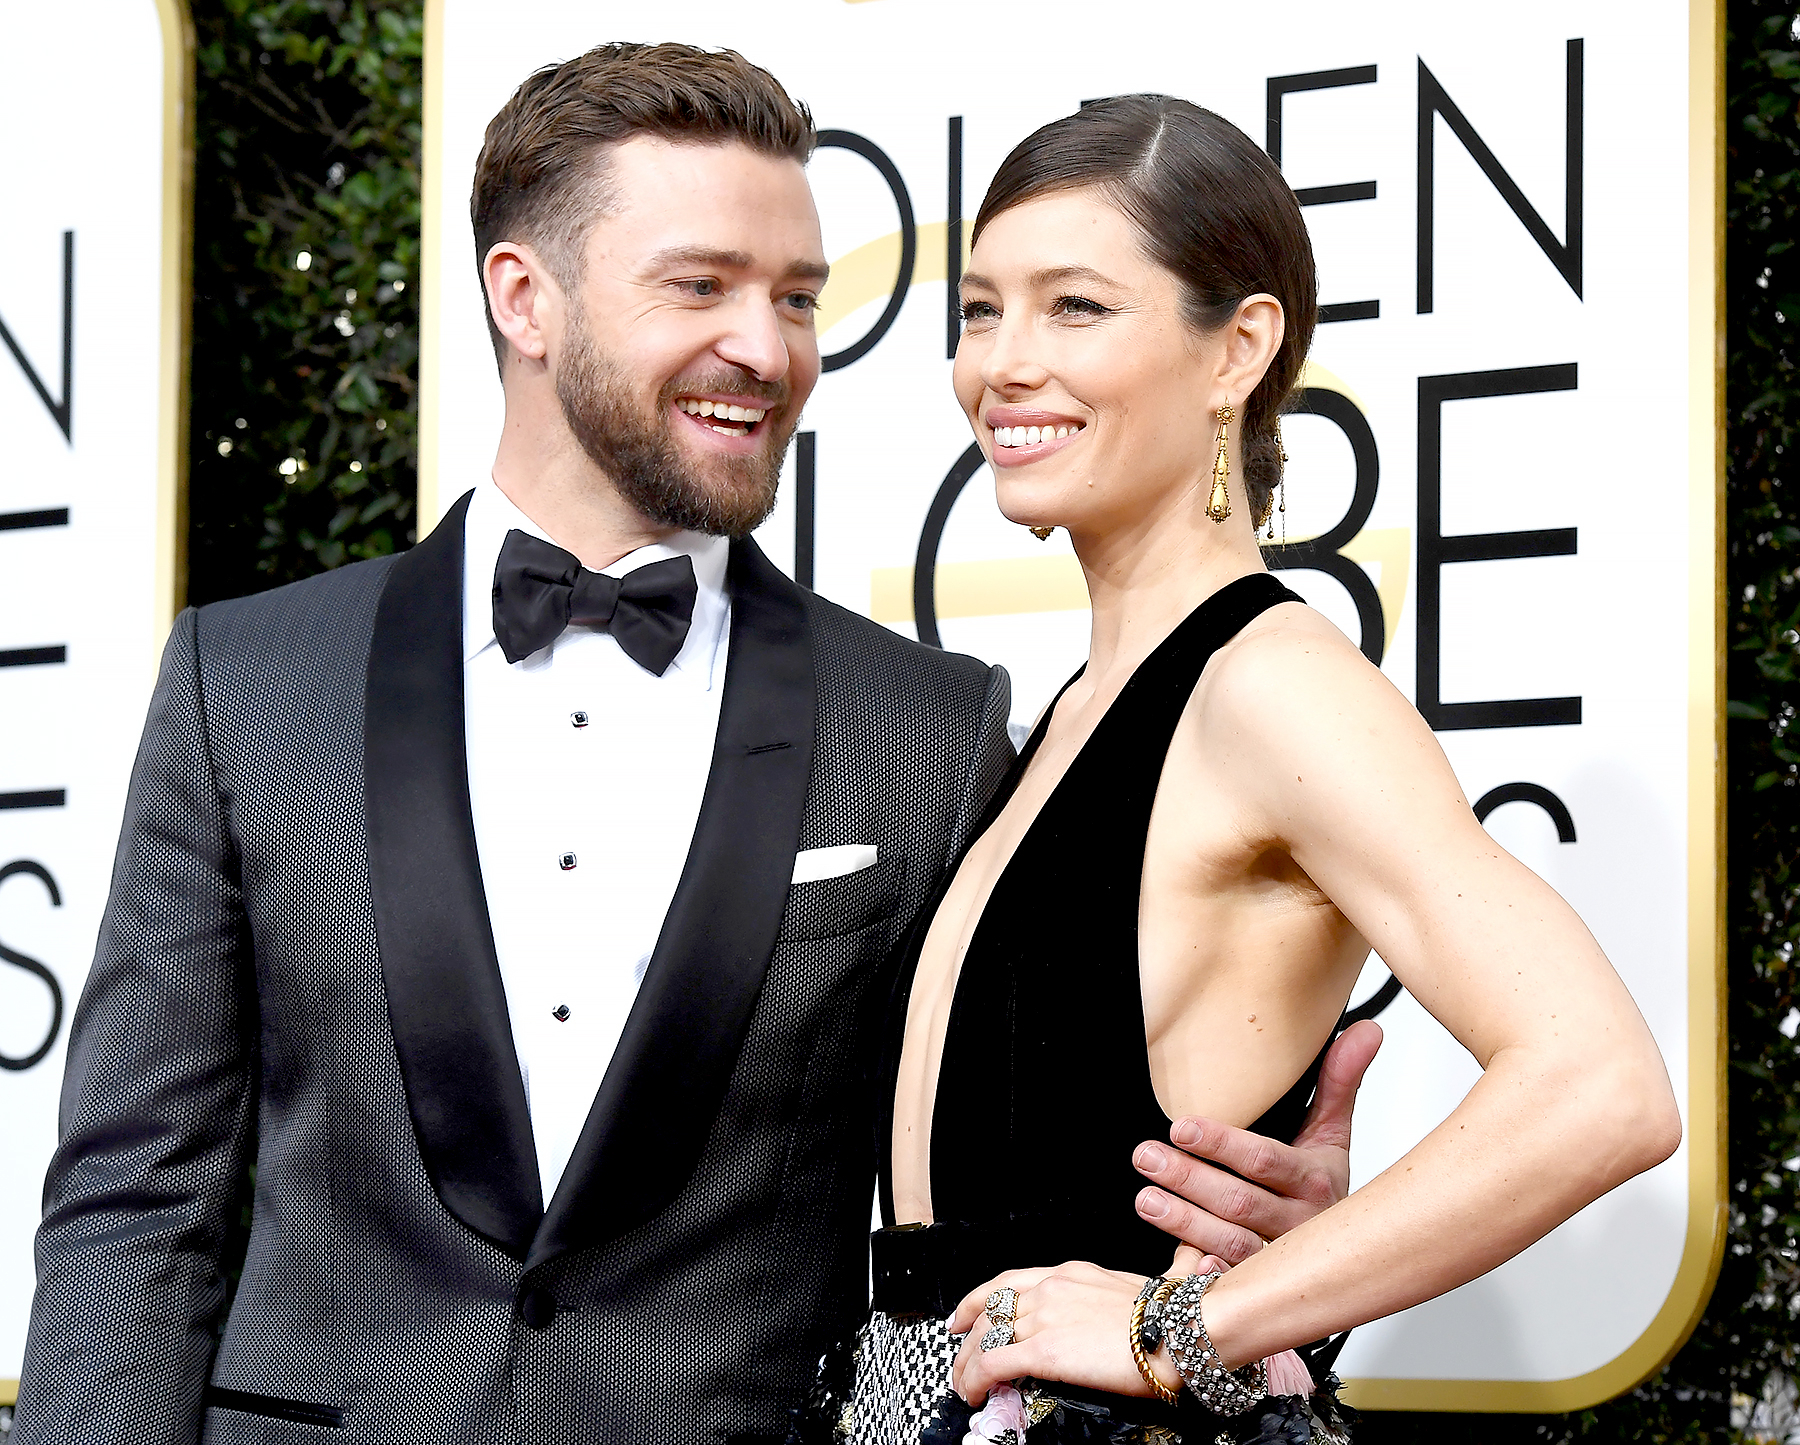 Justin Timberlake and Jessica Biel arrive at the 74th Annual Golden Globe Awards held at the Beverly Hilton Hotel on Jan. 8, 2017.